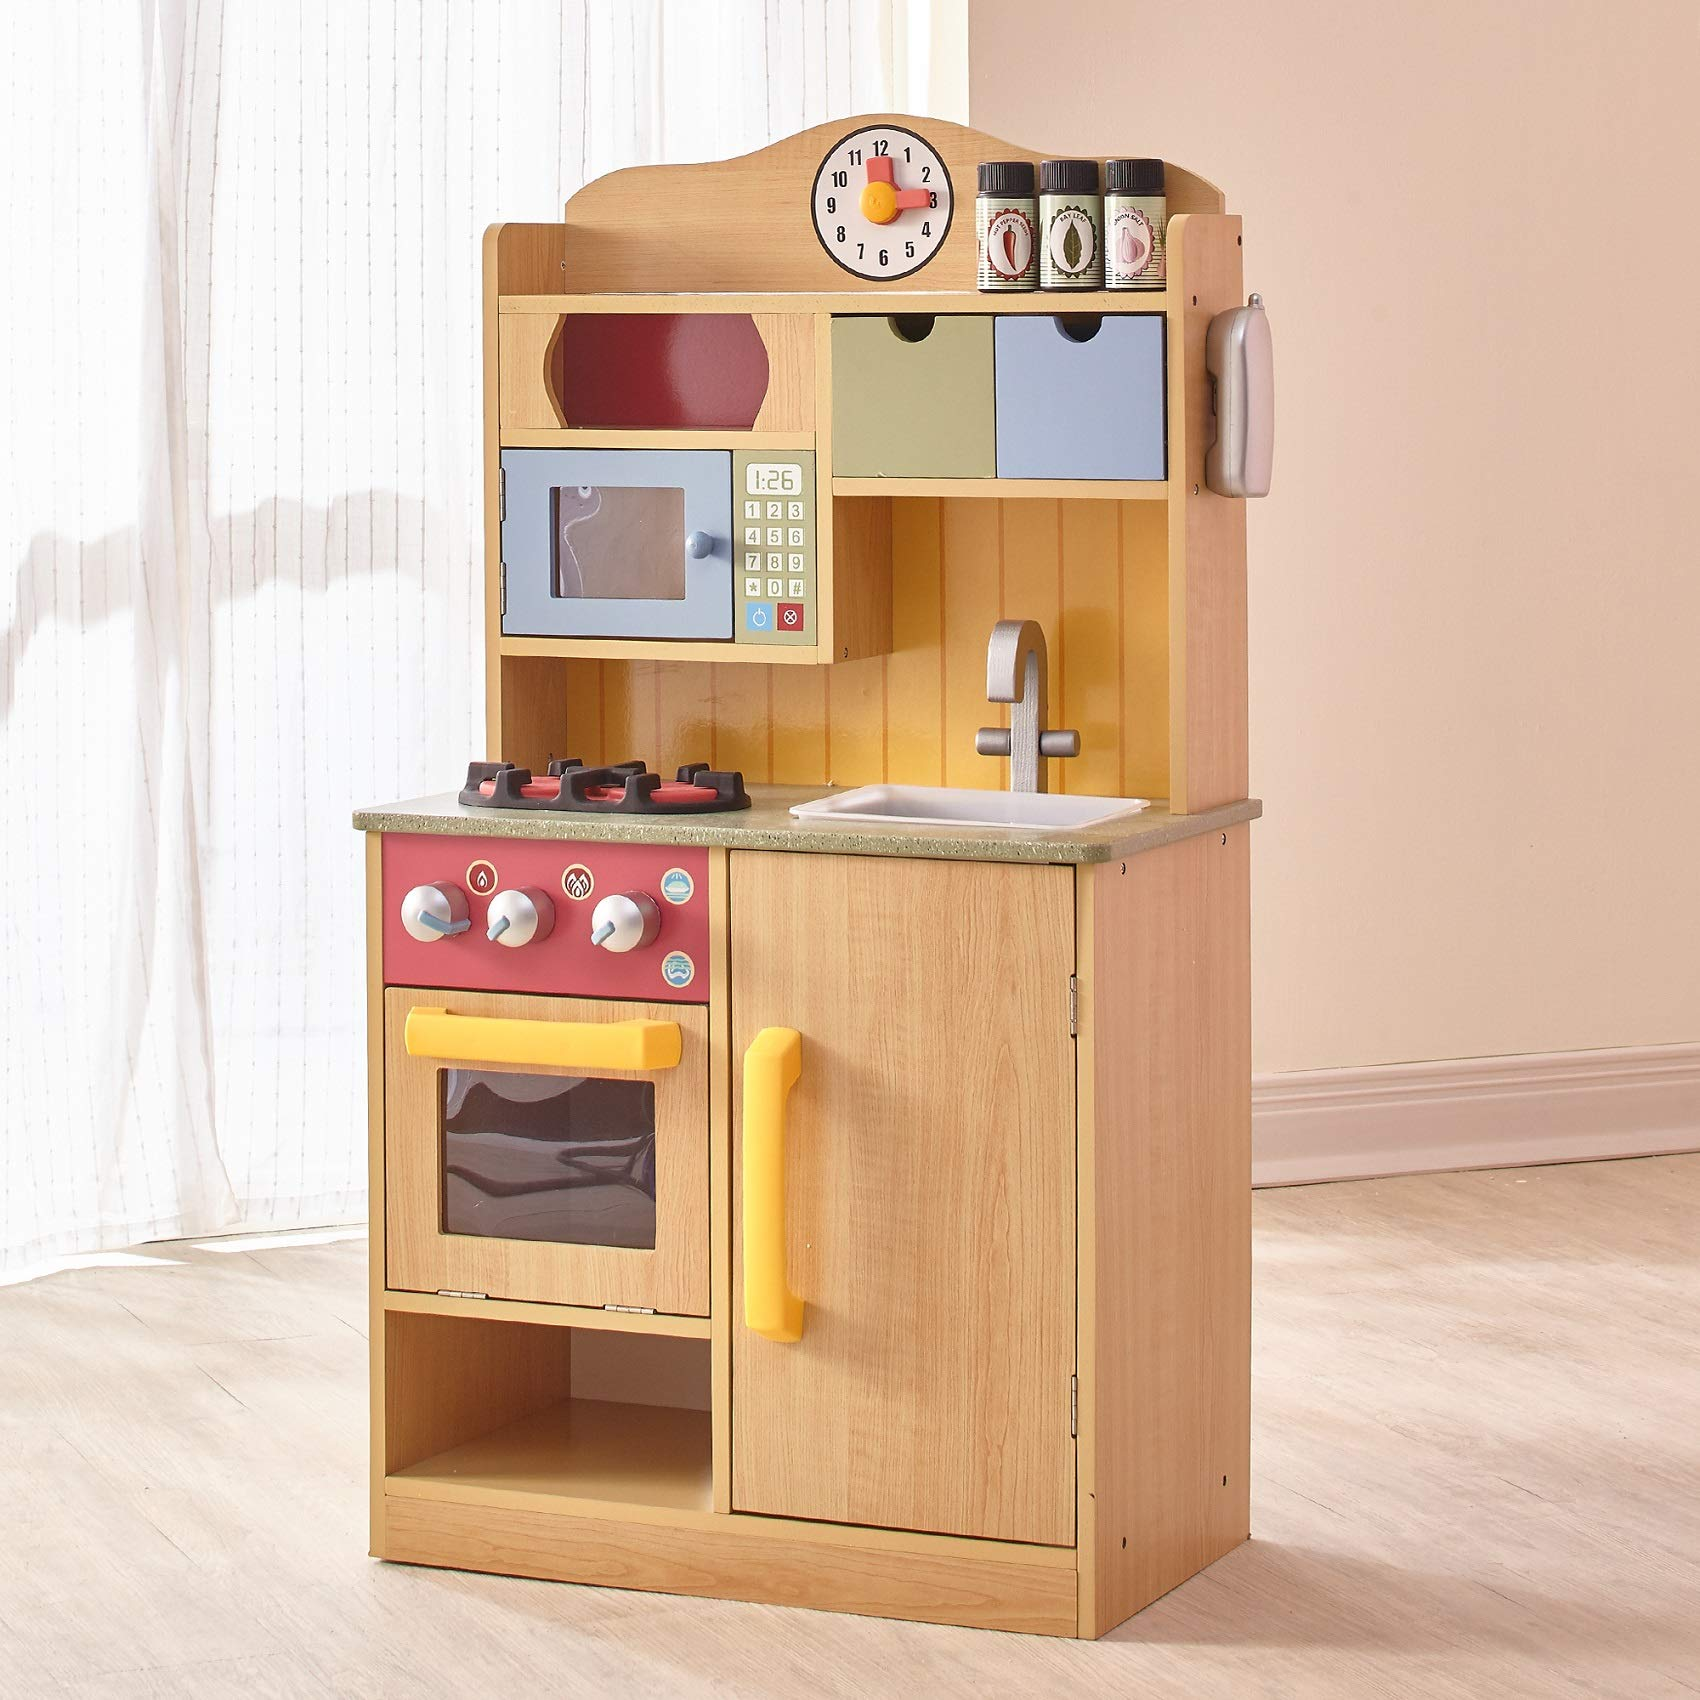 Teamson Kids - Little Chef Florence Classic Kids Play Kitchen | Toddler Pretend Play Set with Accessories - Wood Grain by Teamson Kids